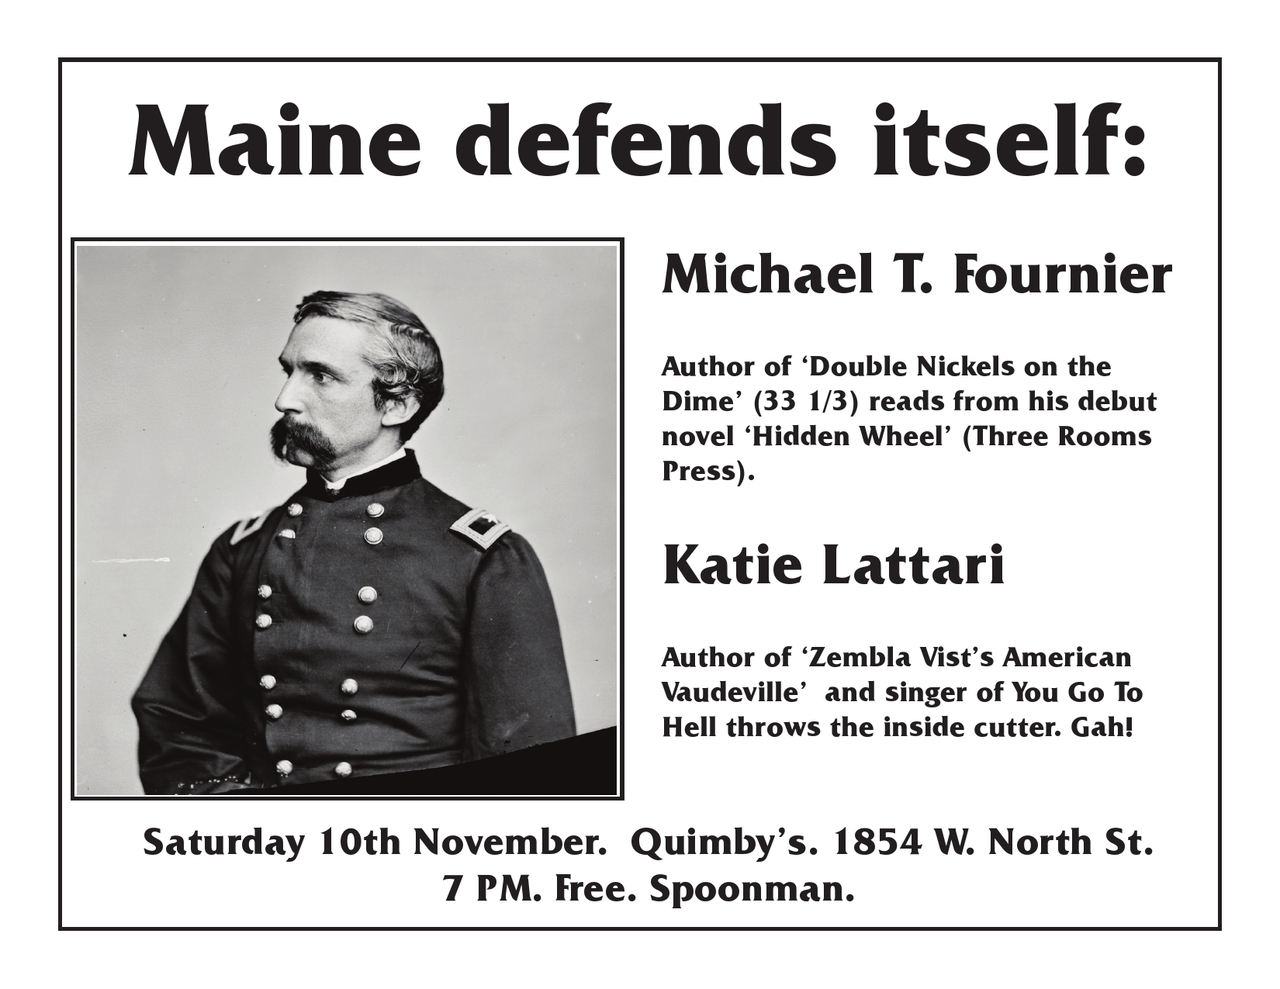 A flyer for Katie Lattari and me in Chicago 11/10.